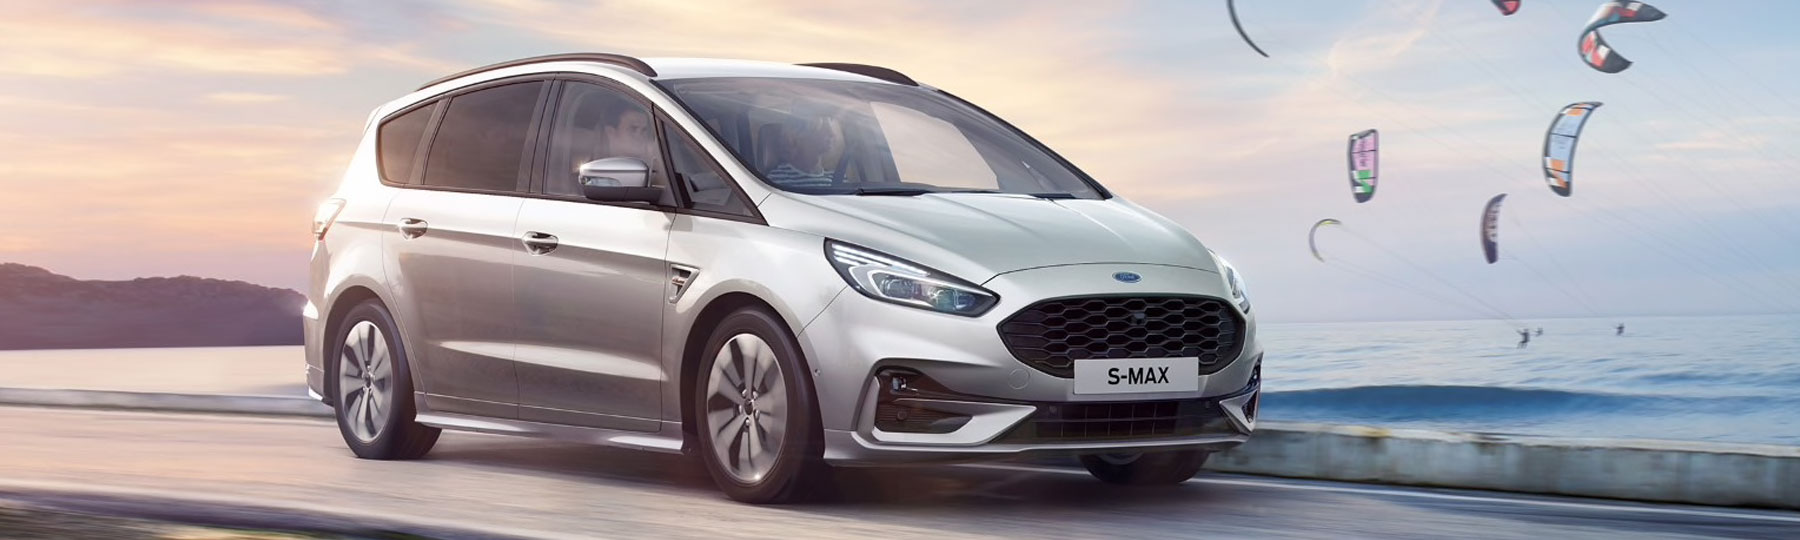 Ford S-MAX New Car Offer